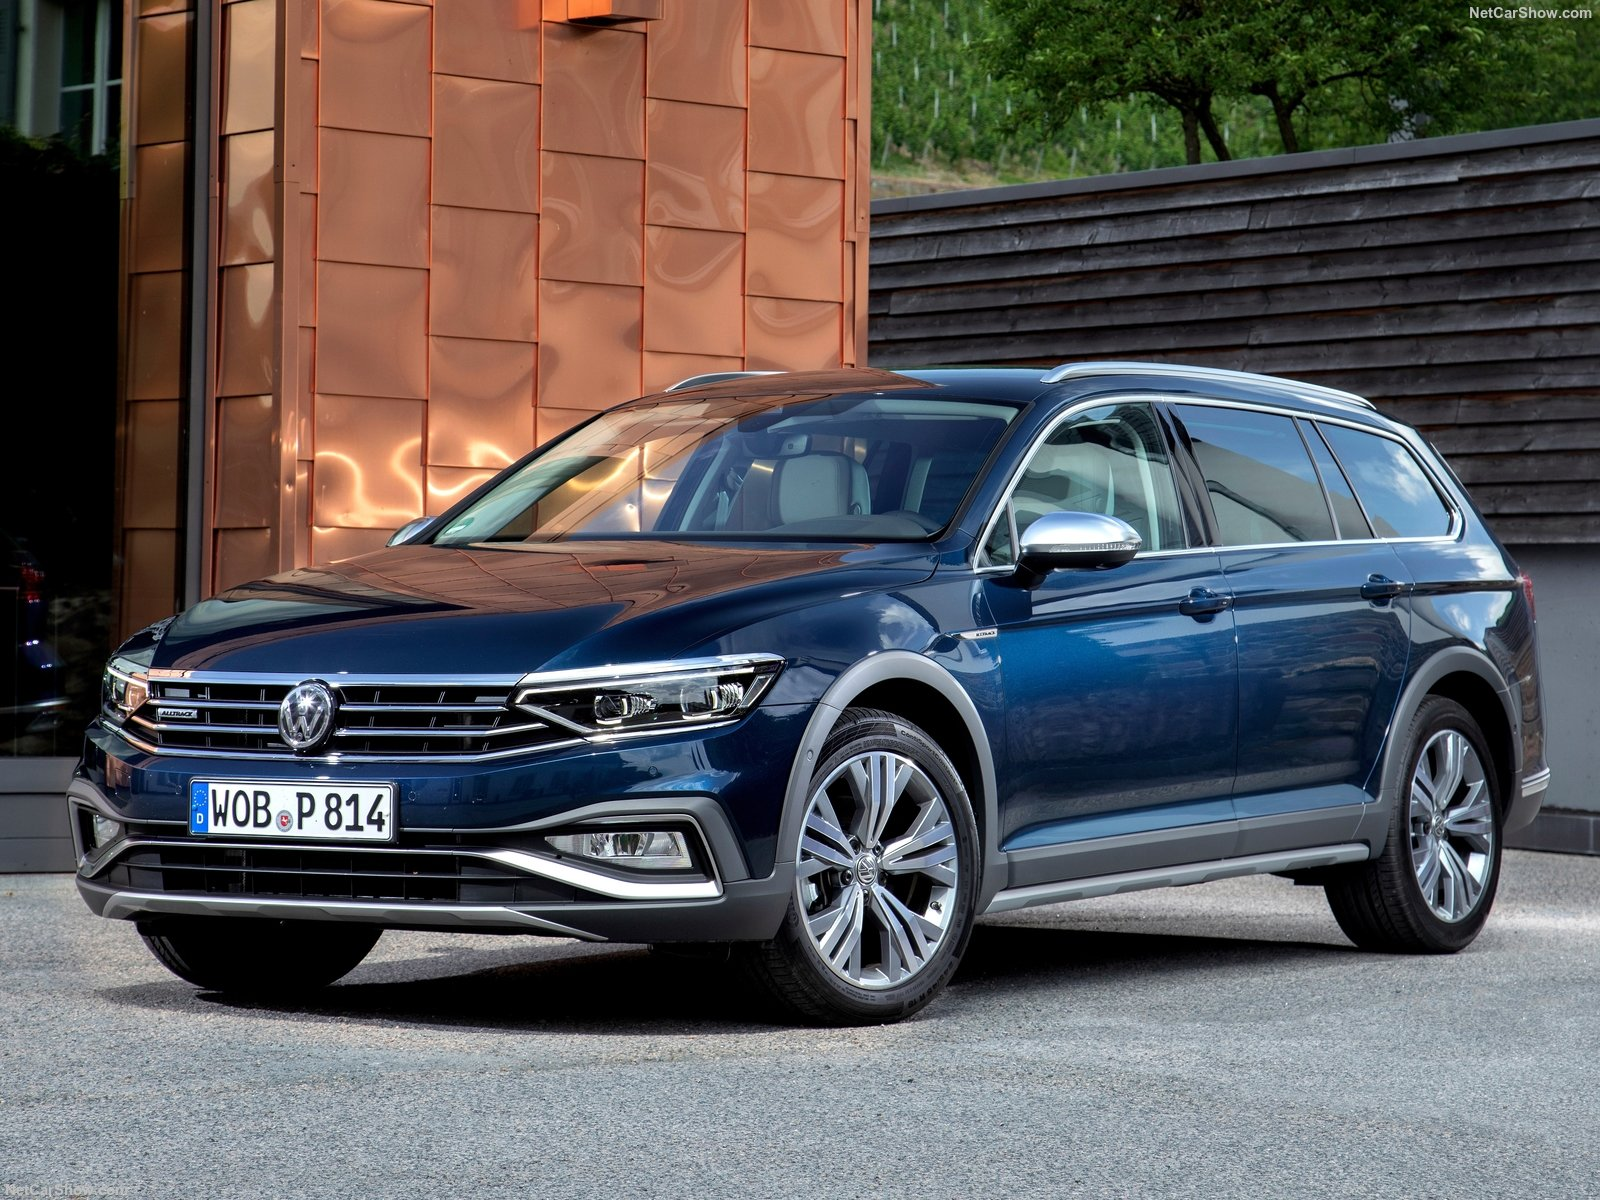 Volkswagen Passat Alltrack photo 196207